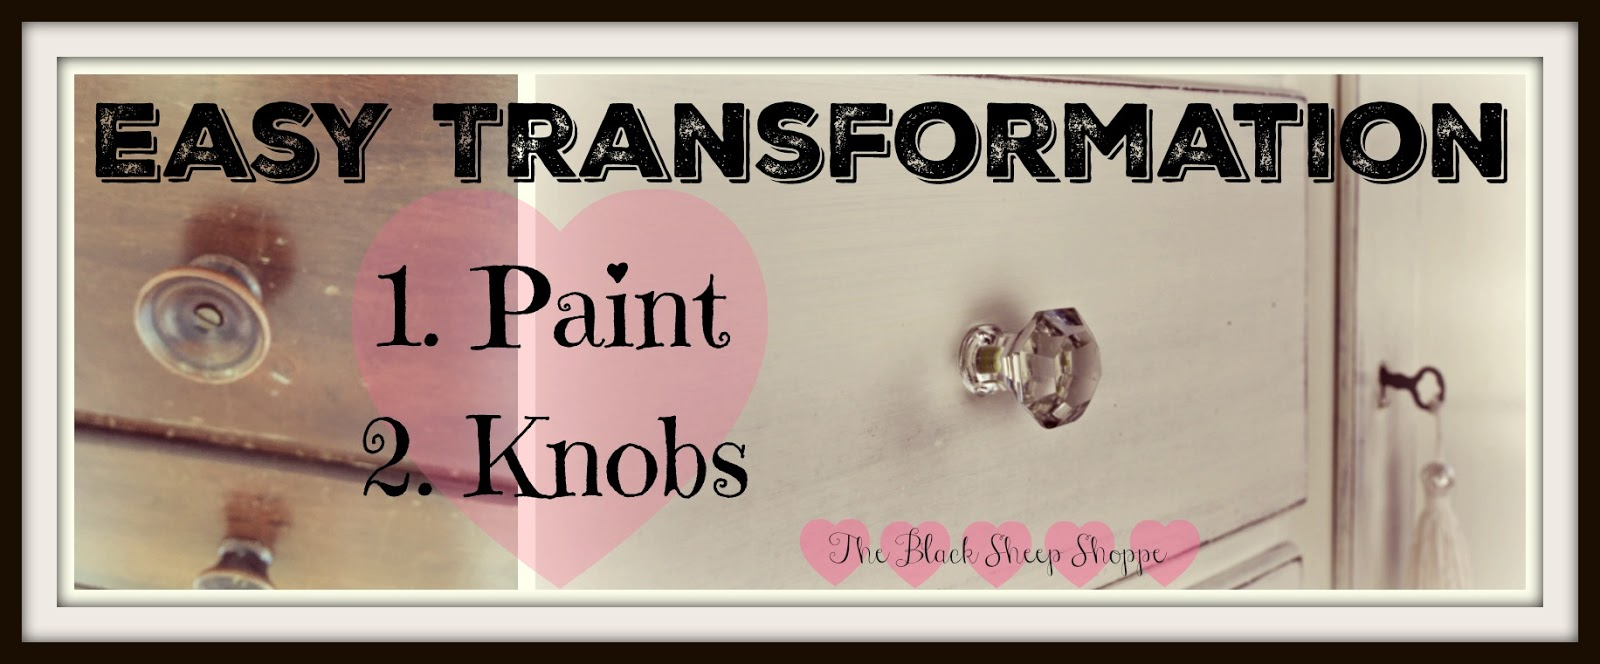 Transform furniture with paint and new knobs.